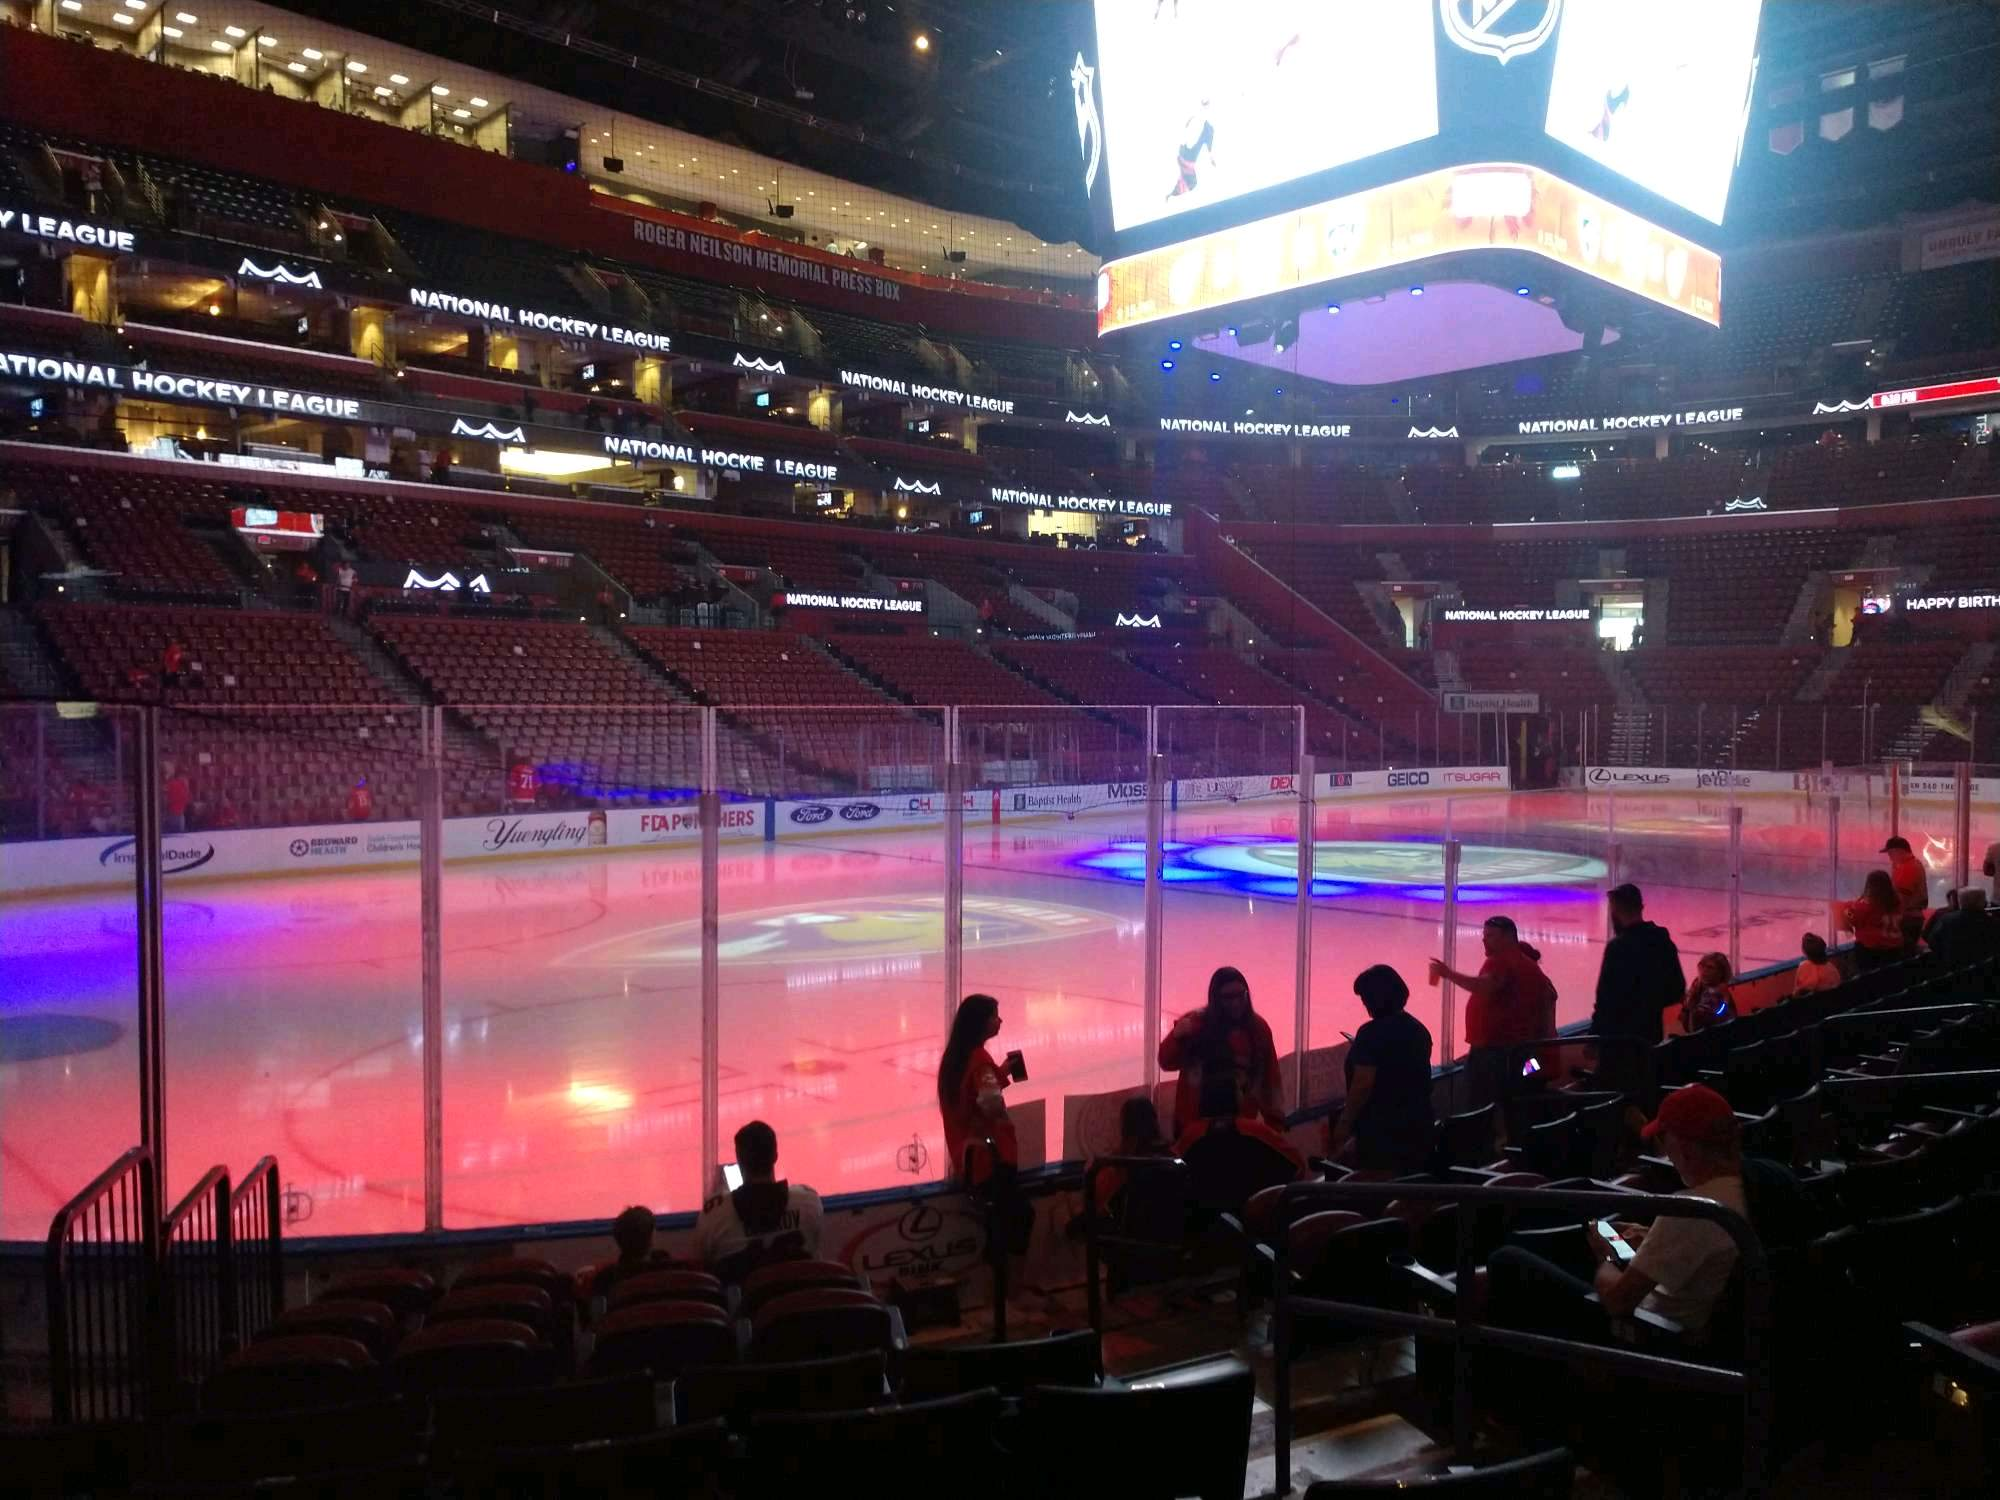 BB&T Center Section 105 Row 9 Seat 4